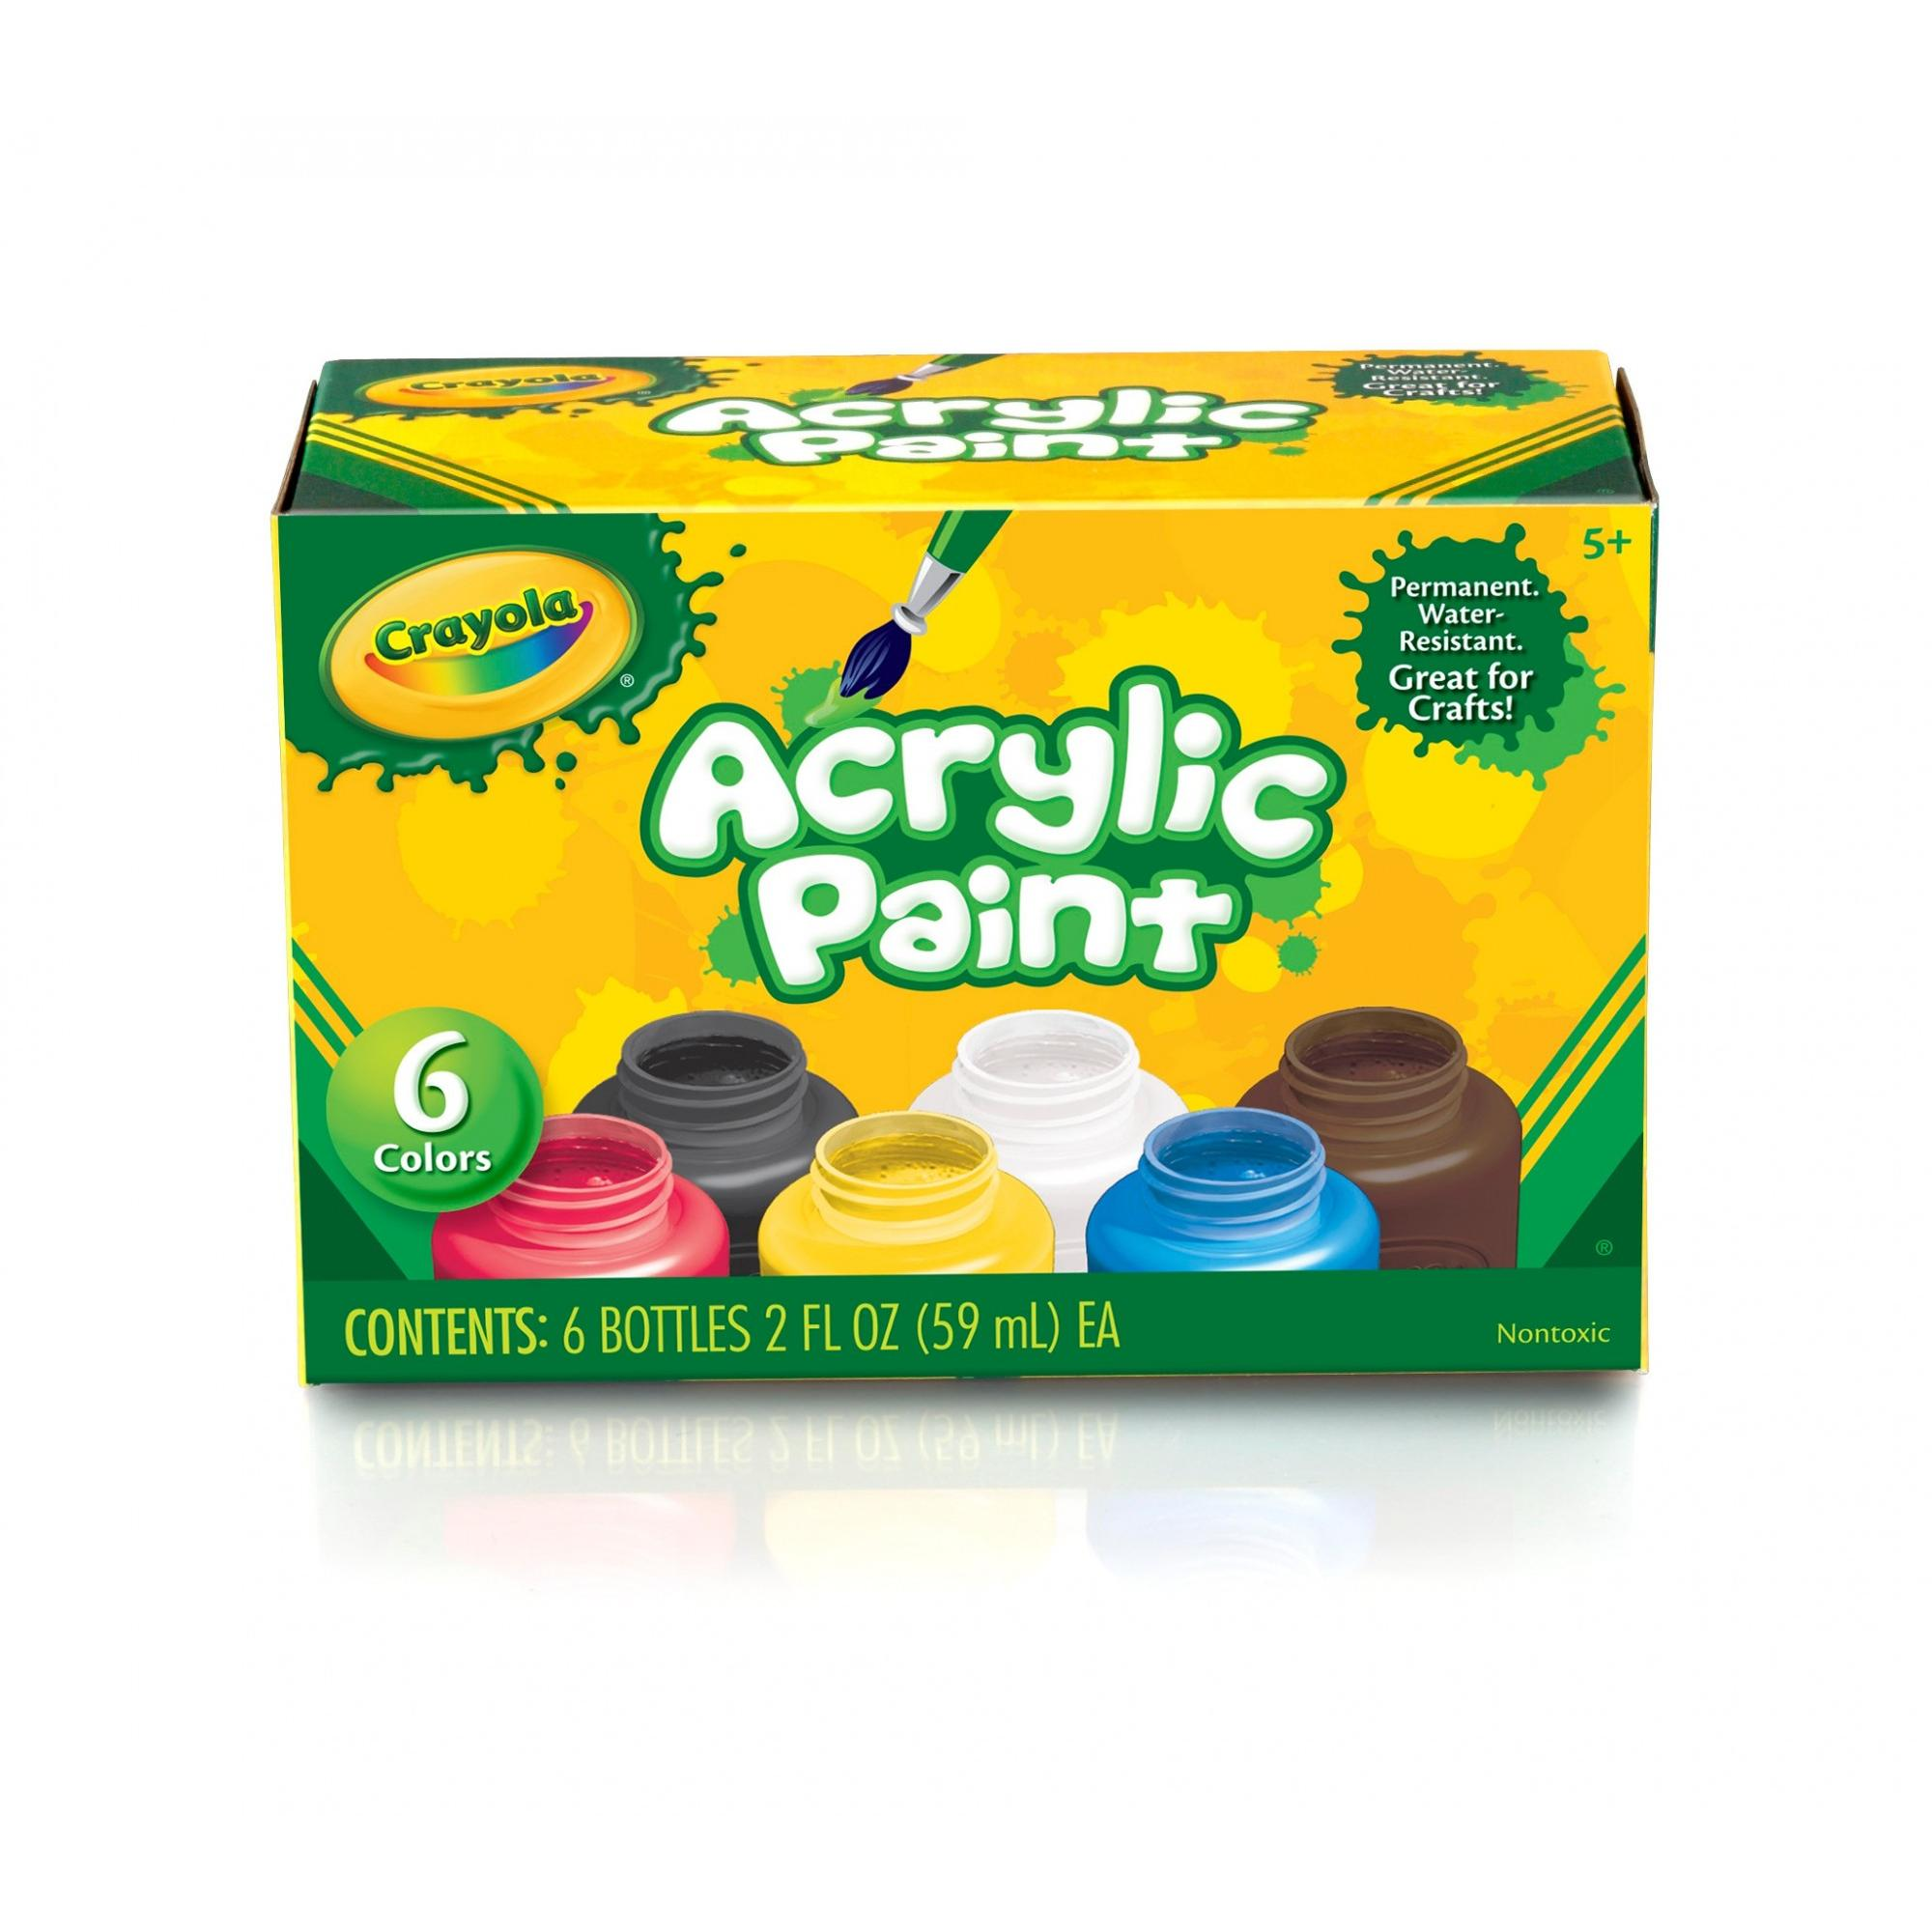 Crayola Water-Resistant Acrylic Paint Set, 2 oz Bottle, Assorted Color, Painting Supplies, Set of 6